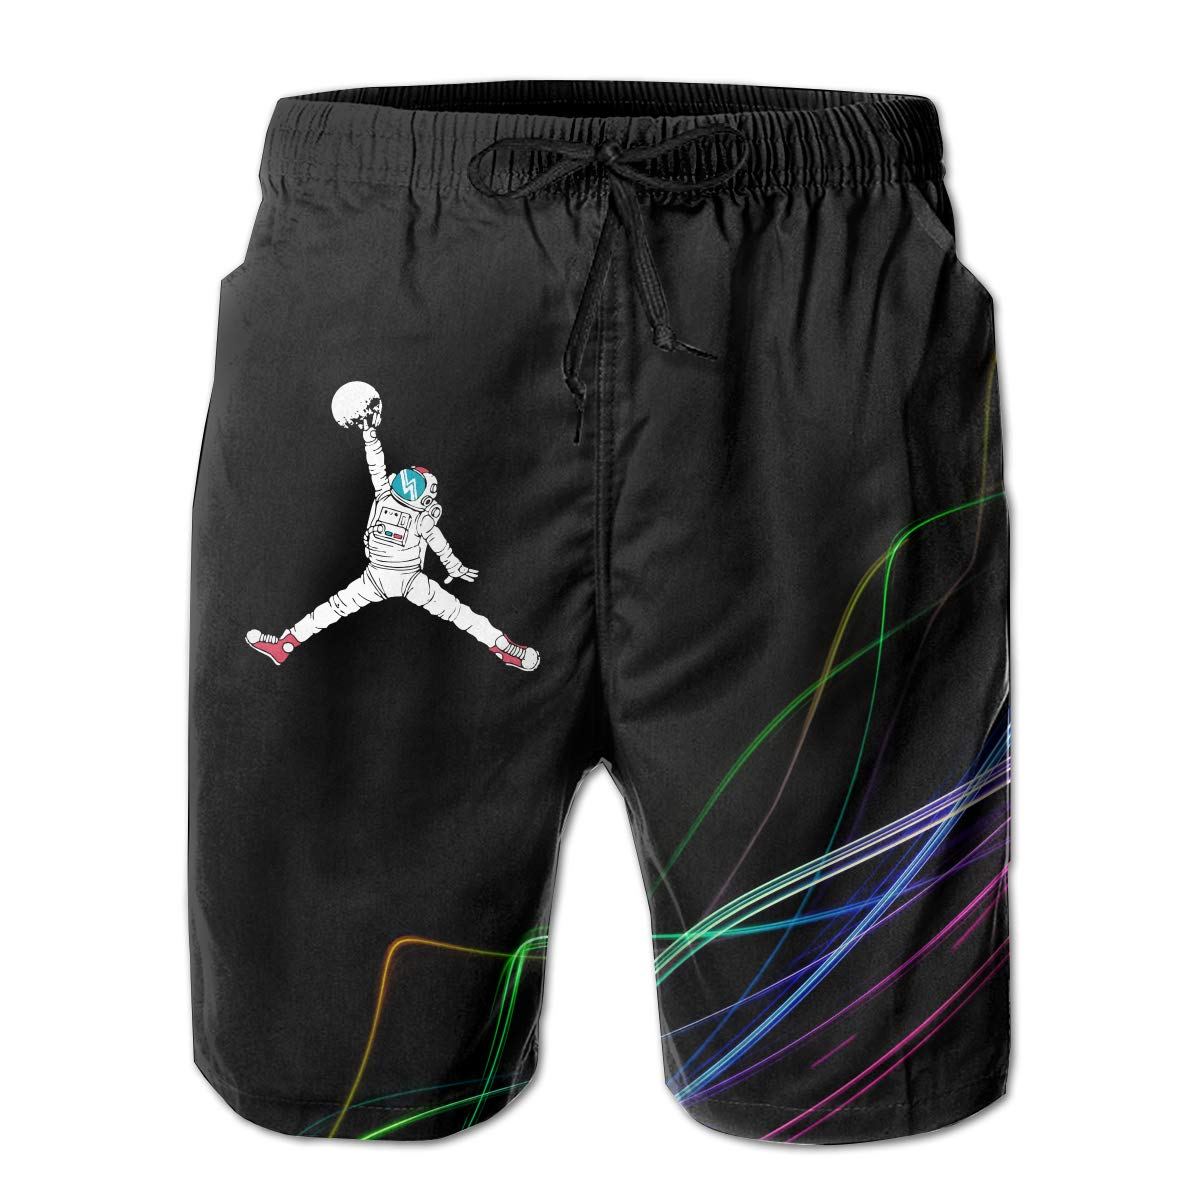 STLYESHORTS Space Dunk Mens Board Shorts Swim Trunks Beachwear Relaxed-Fit Swim Shorts